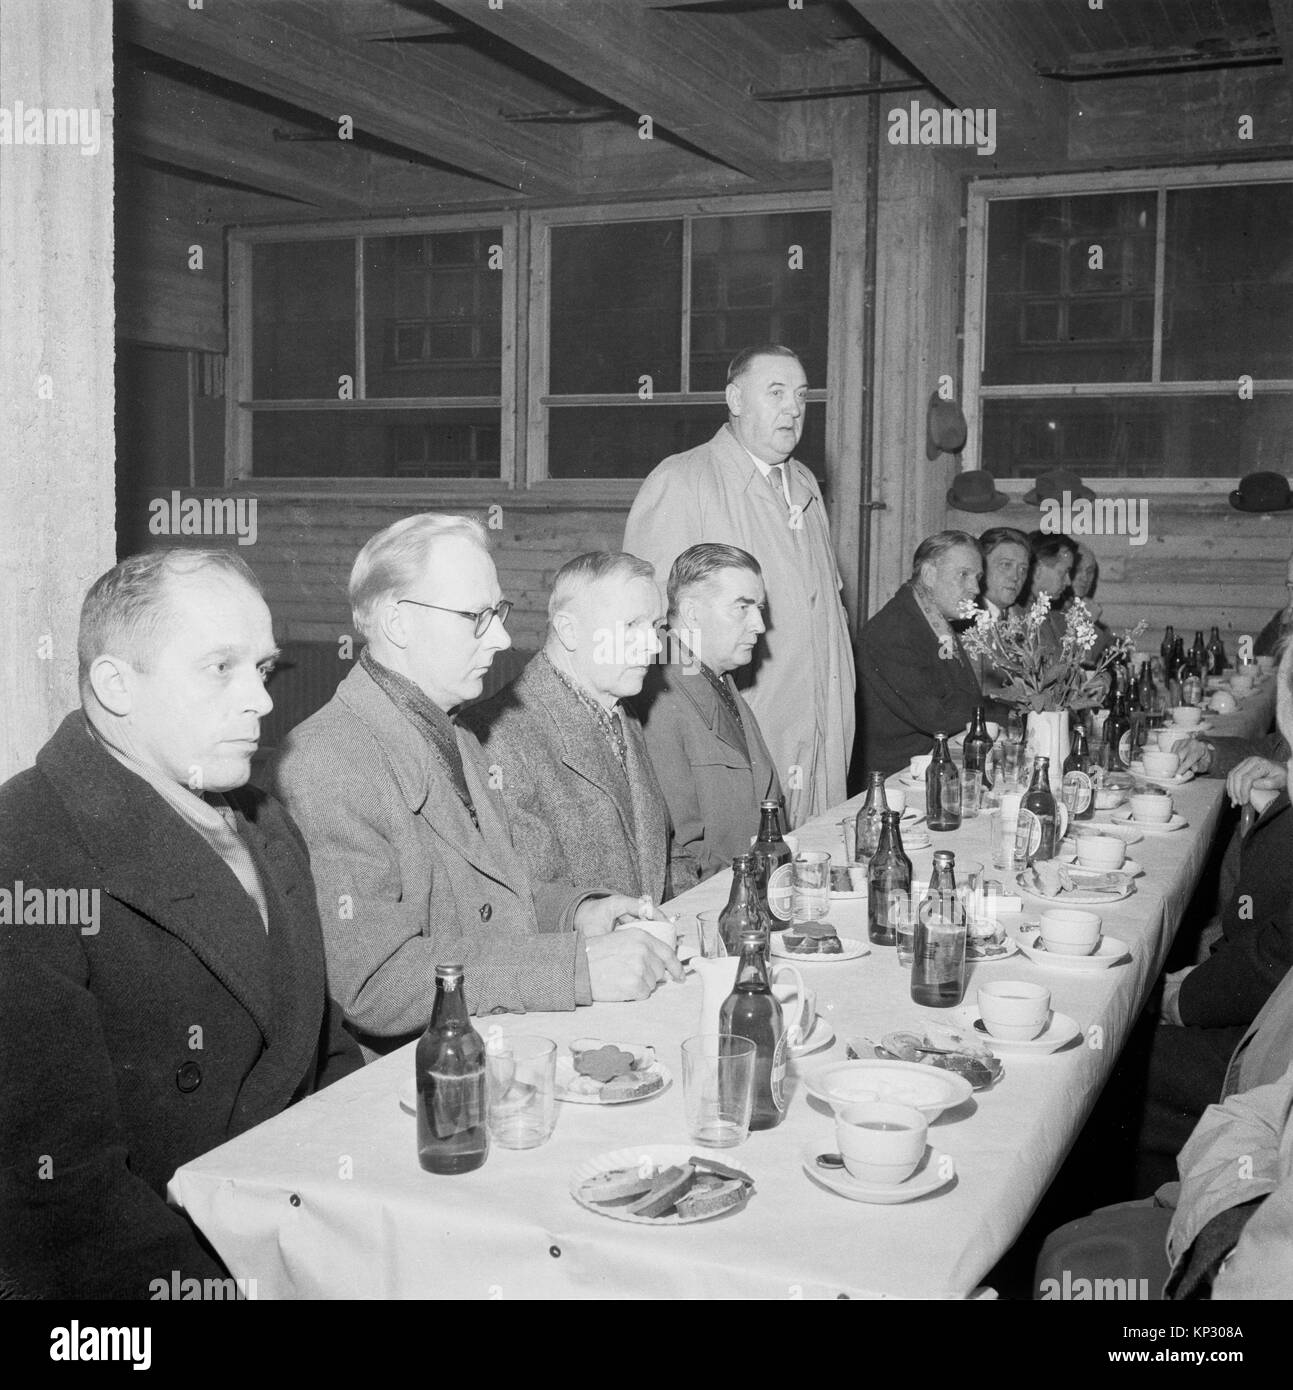 Small party in industrial setting for completion ceremony of new printing press, Helsinki, Finland, 1956 - Stock Image